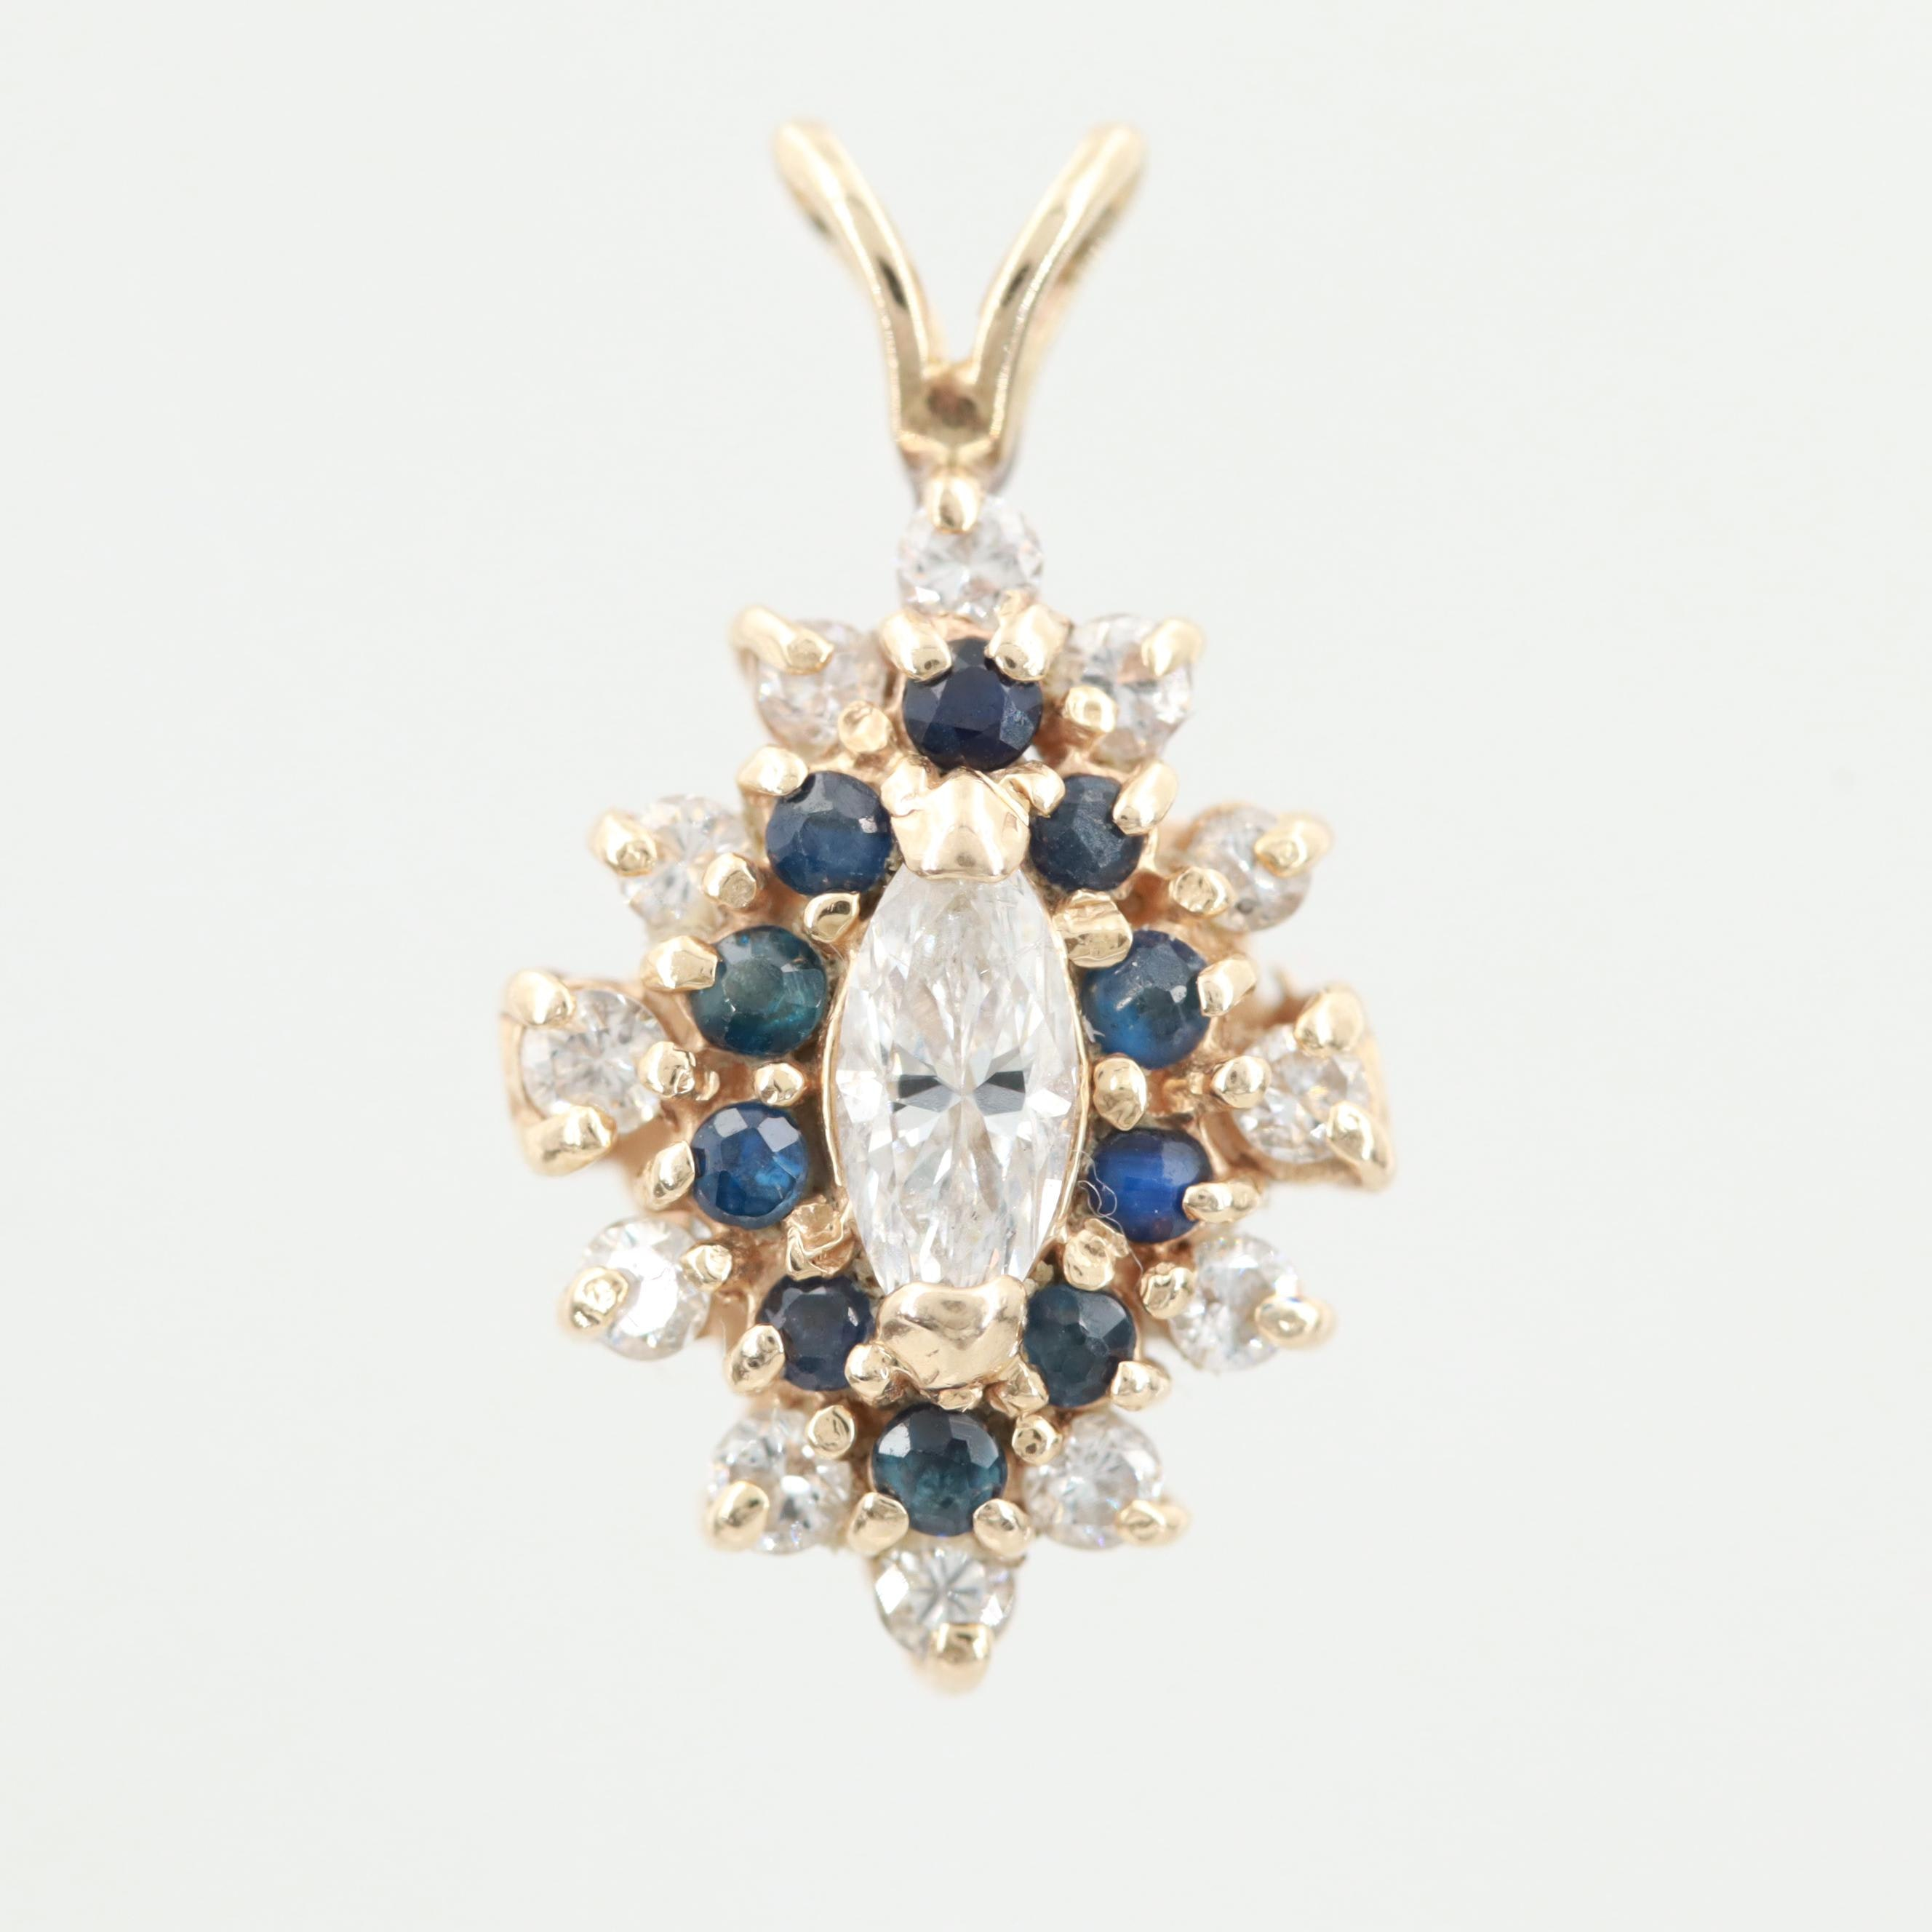 14K Yellow Gold Diamond and Sapphire Pendant